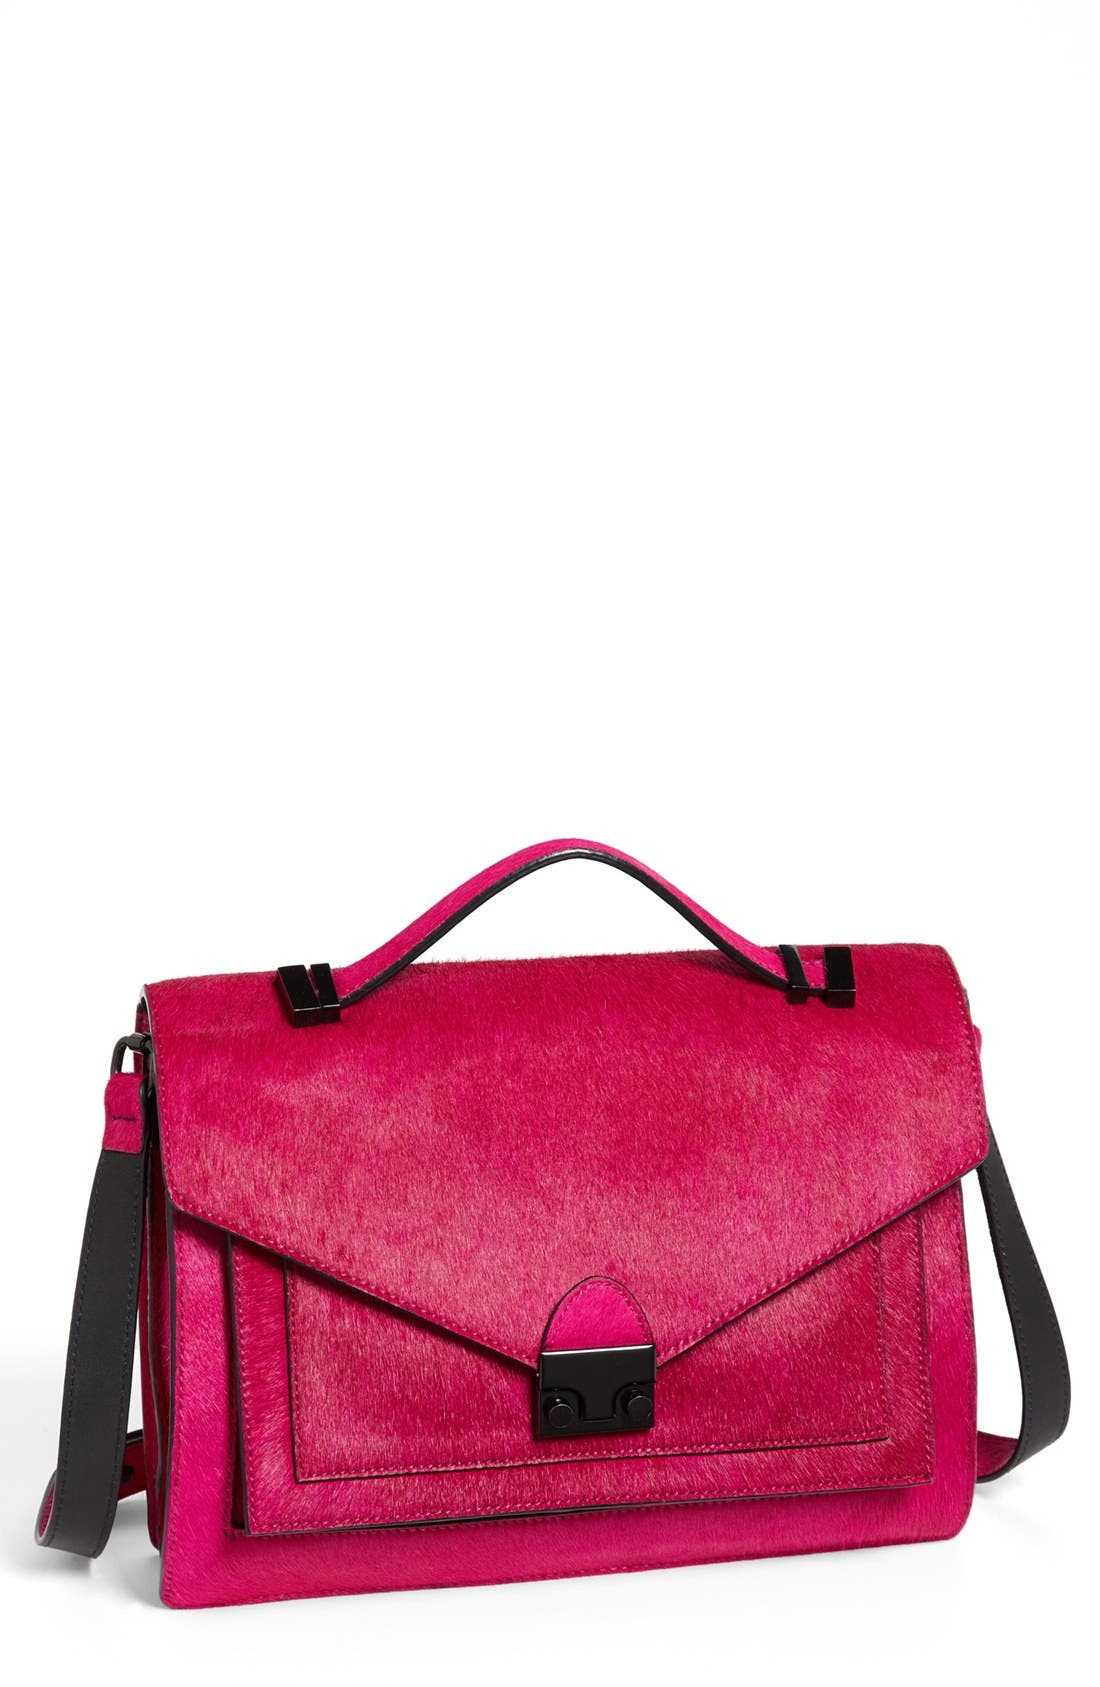 Alternate Image 1 Selected - Loeffler Randall 'Rider' Calf Hair & Leather Satchel, Medium